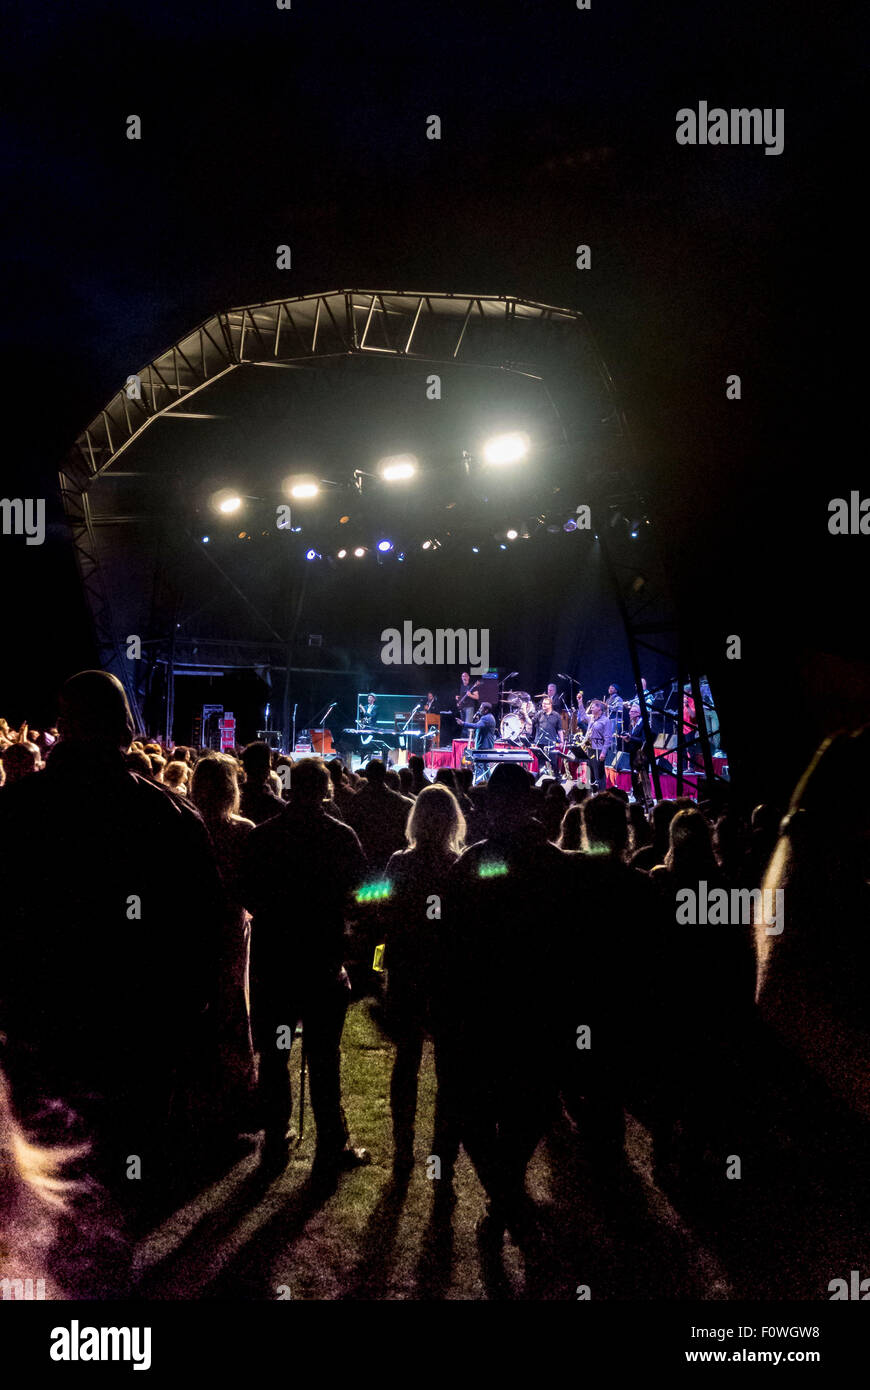 Castle Howard, Yorkshire, UK. 21st August, 2015. 21st August 2015: Jools Holland and his Rhythm and Blues Orchestra - Stock Image